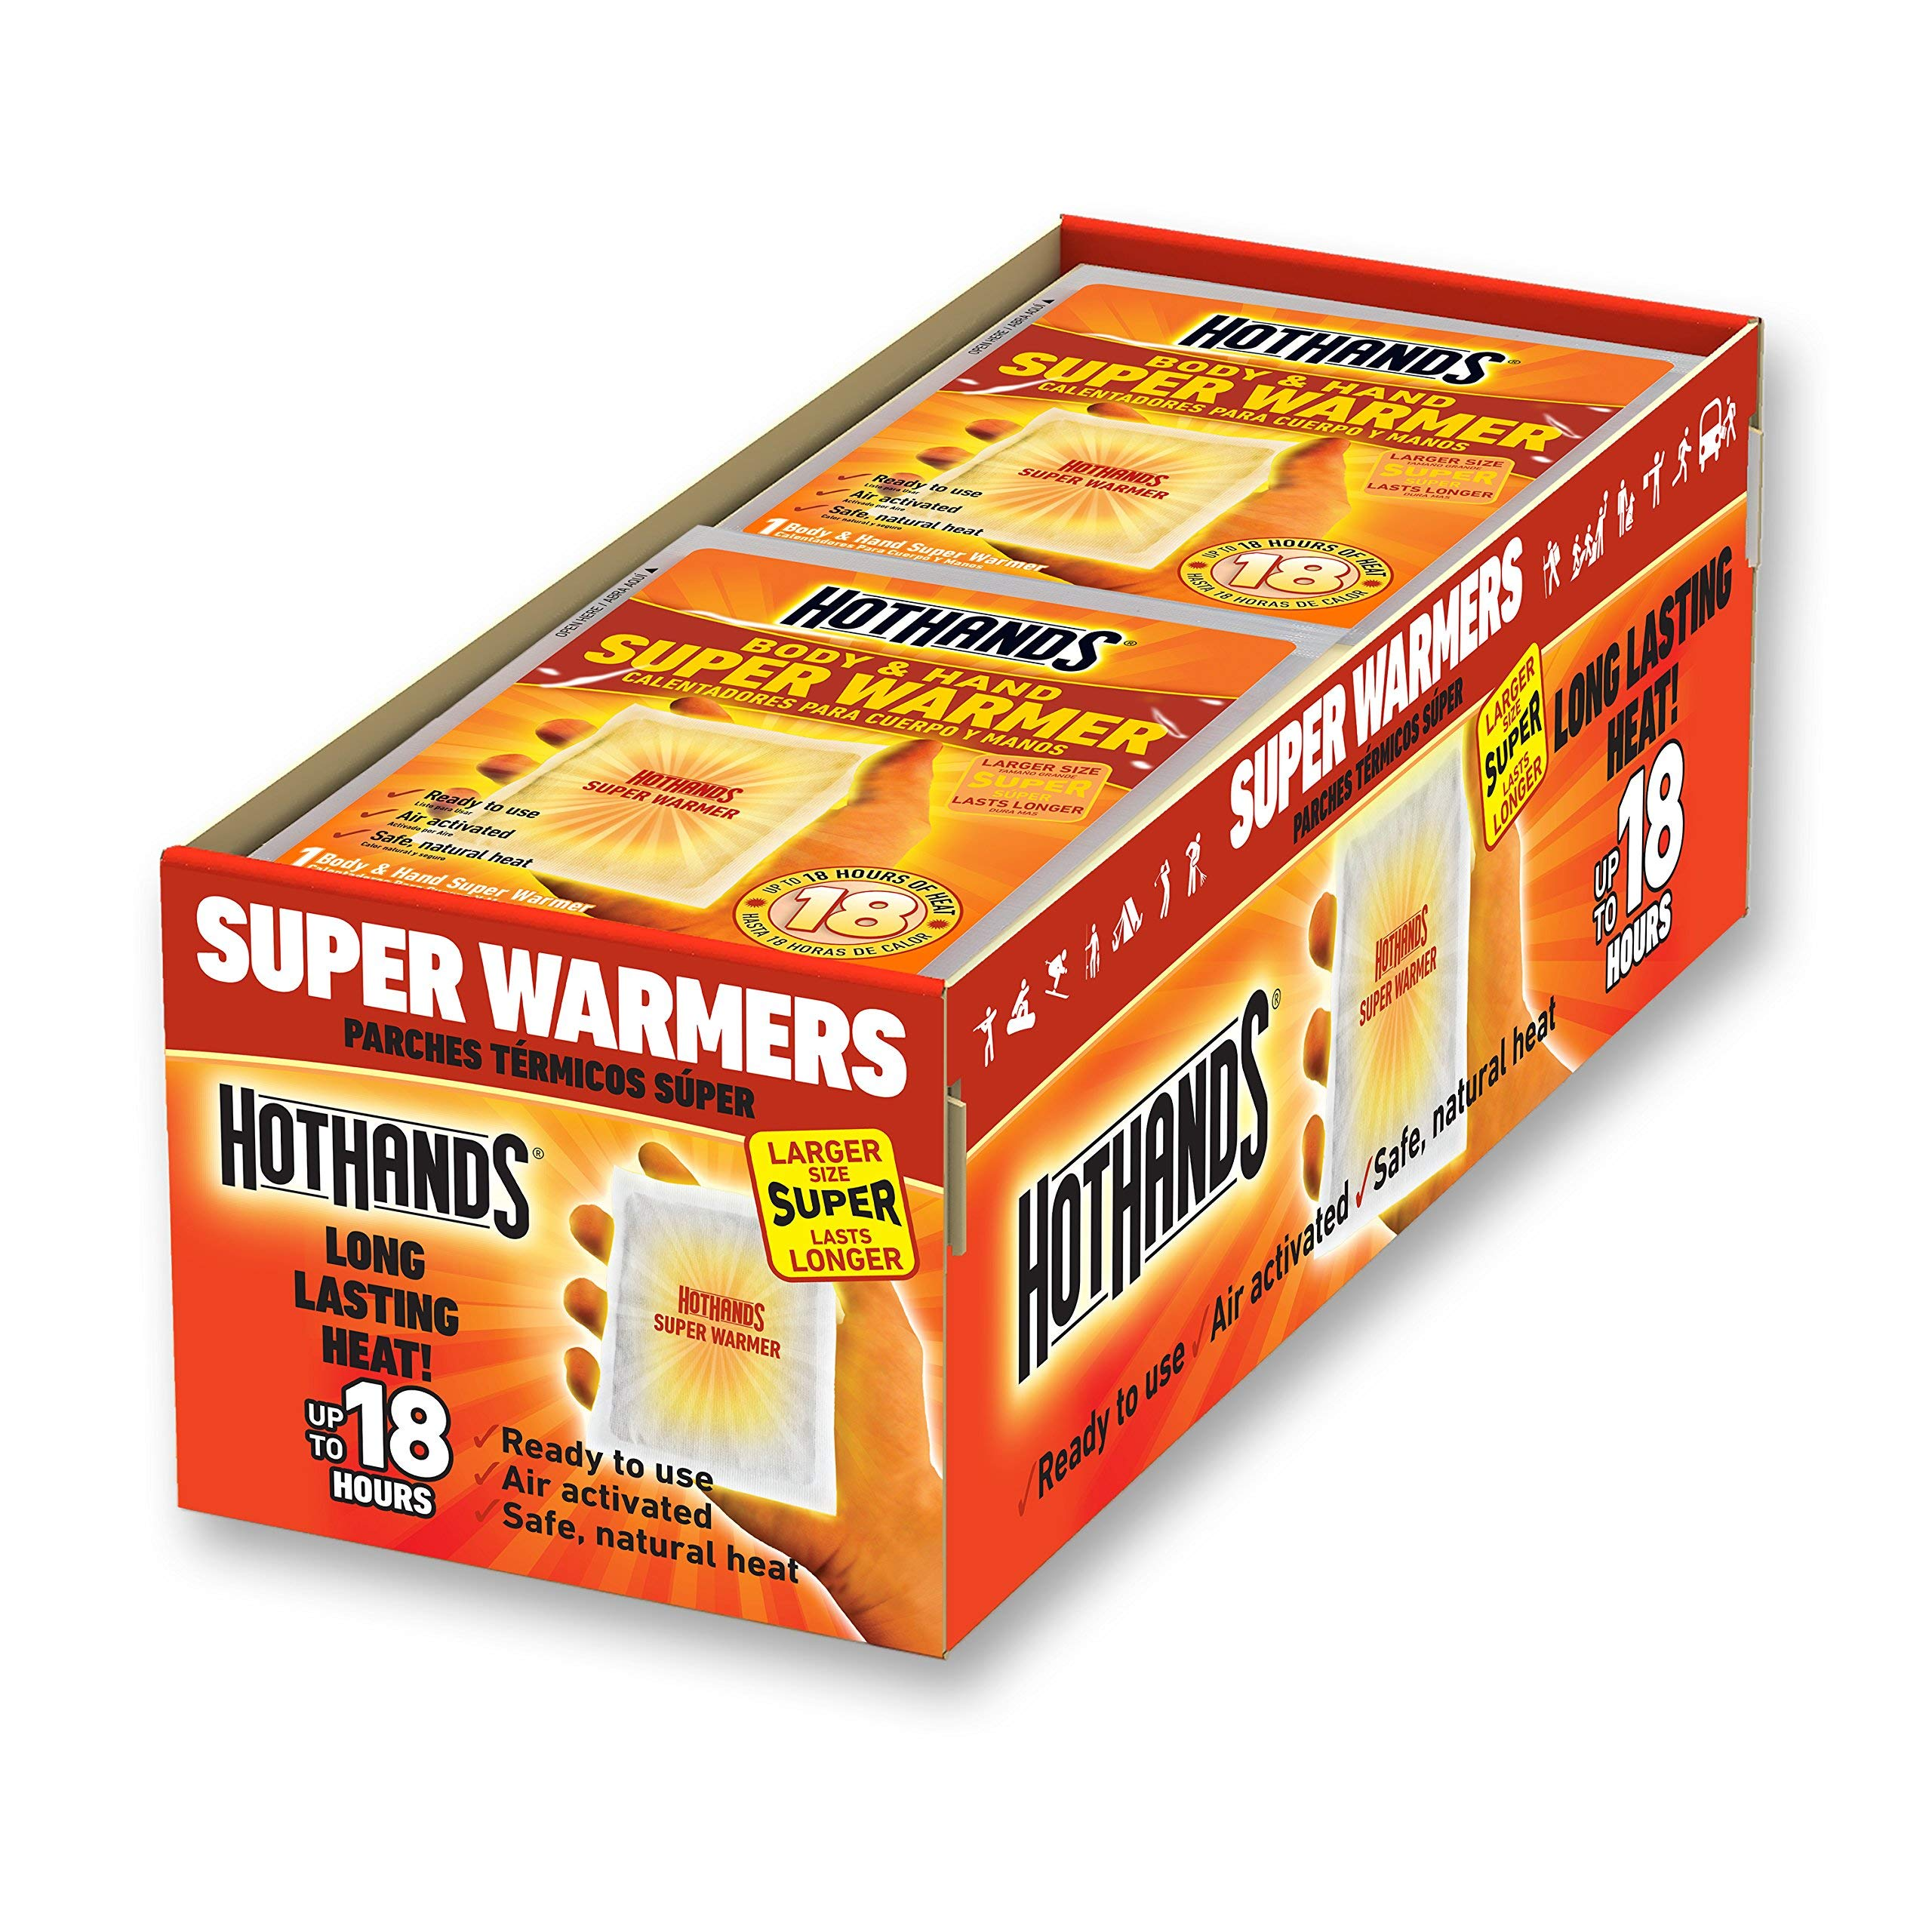 HotHands Body & Hand Super Warmers - Long Lasting Safe Natural Odorless Air Activated Warmers - Up to 18 Hours of Heat - 40 Individual Warmers (Renewed) by HotHands